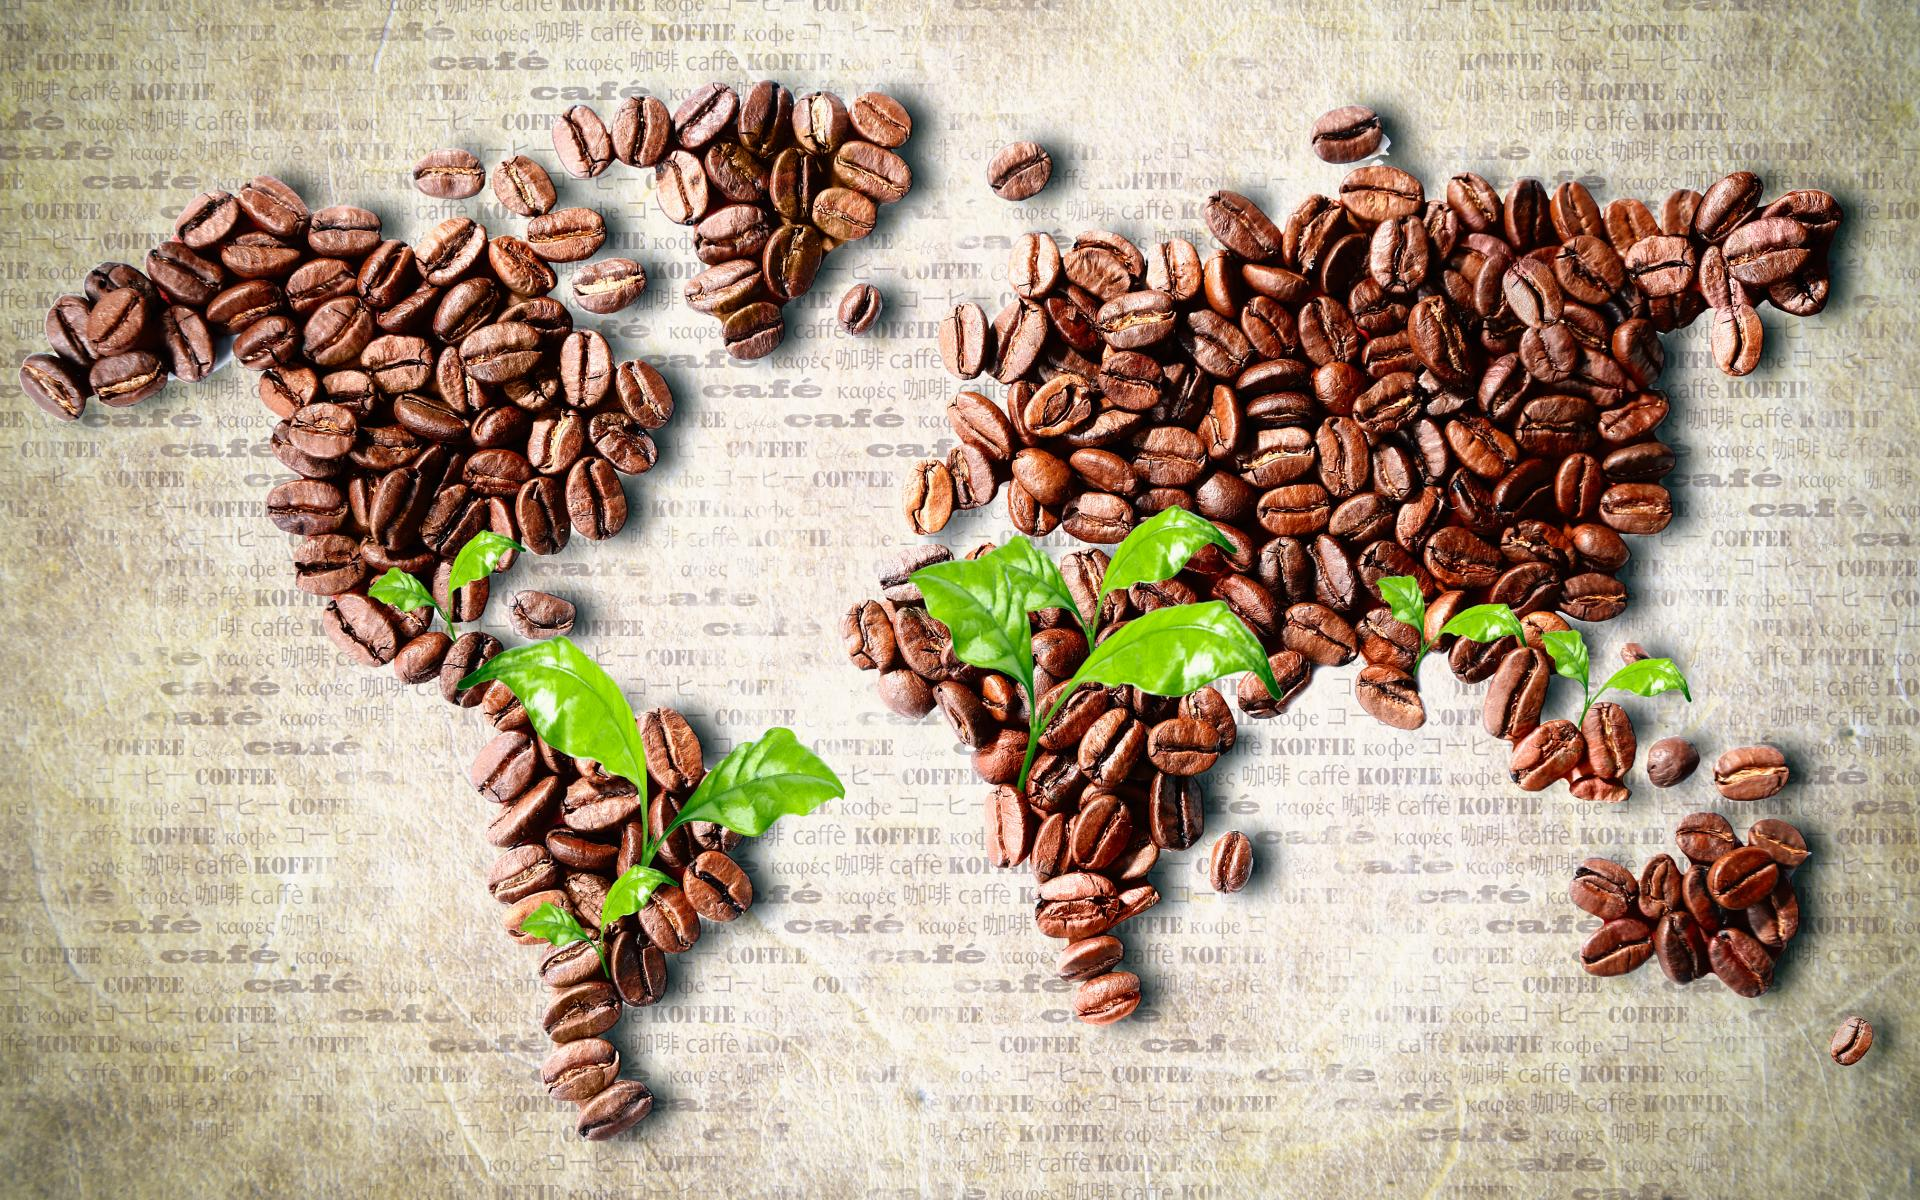 Coffee Art History Food Drinks Coffee Maps Continents News Paper Leaves Art